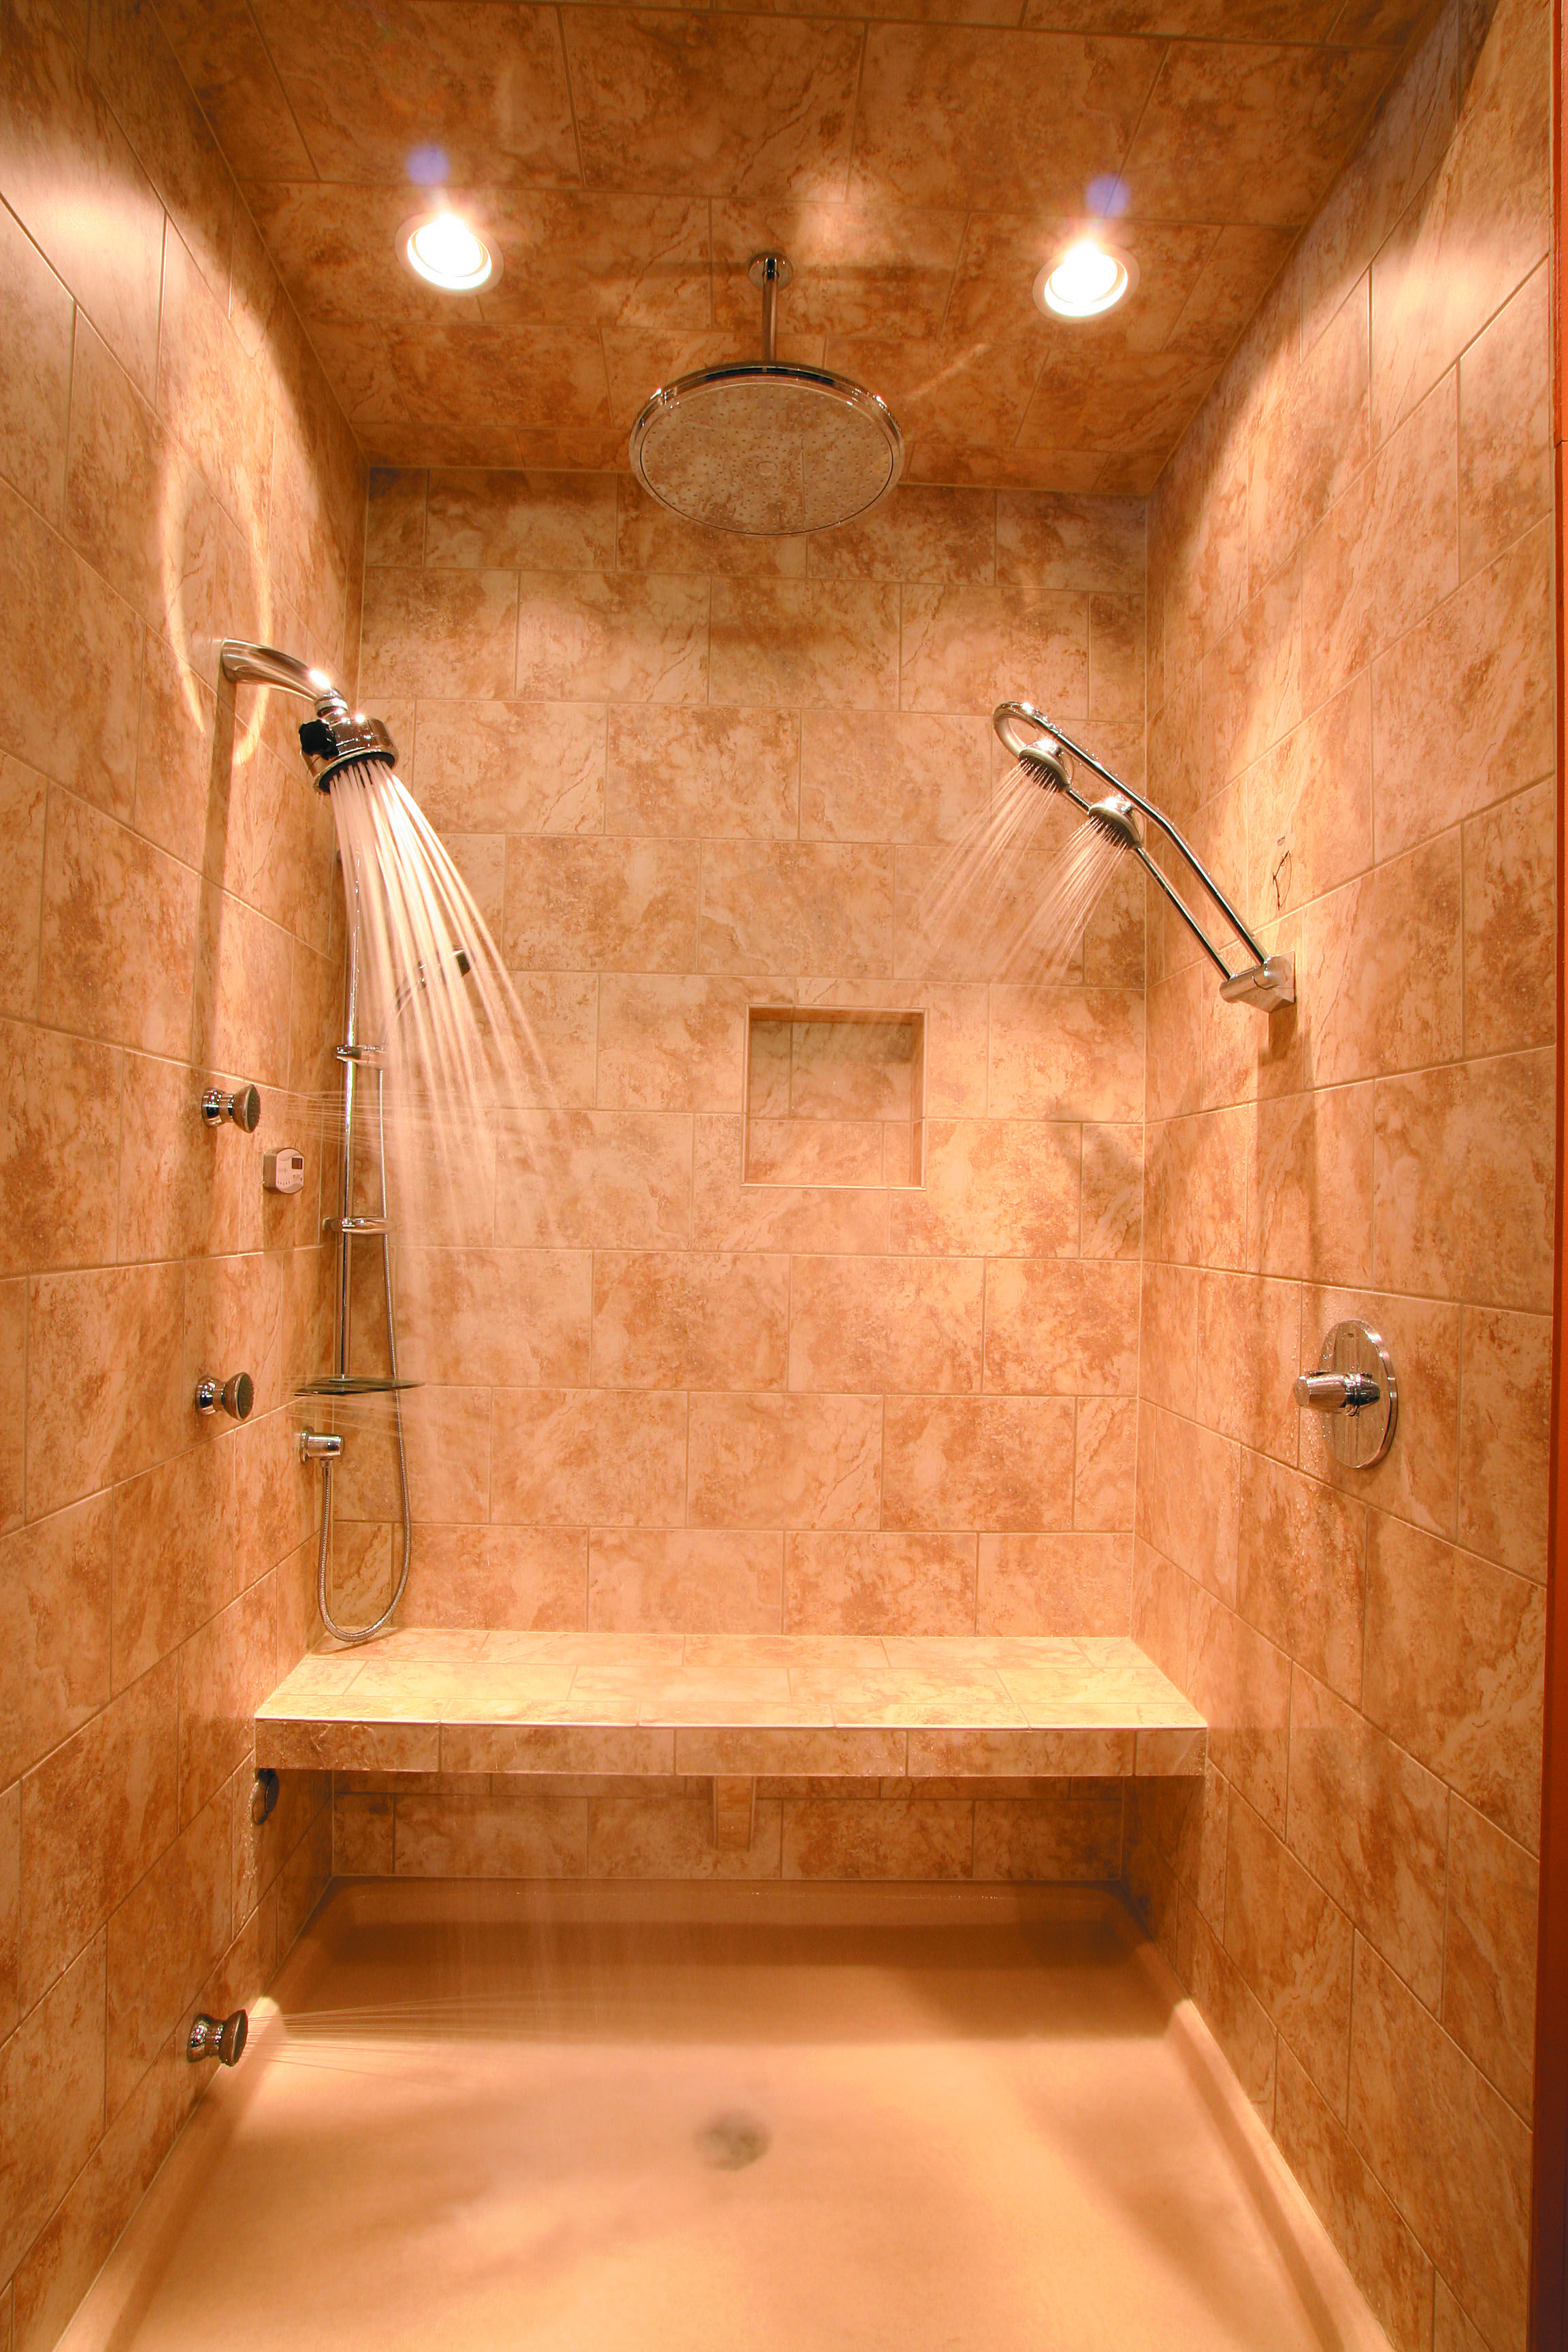 Check out this dreamy shower! The only drawback would be cleaning ...